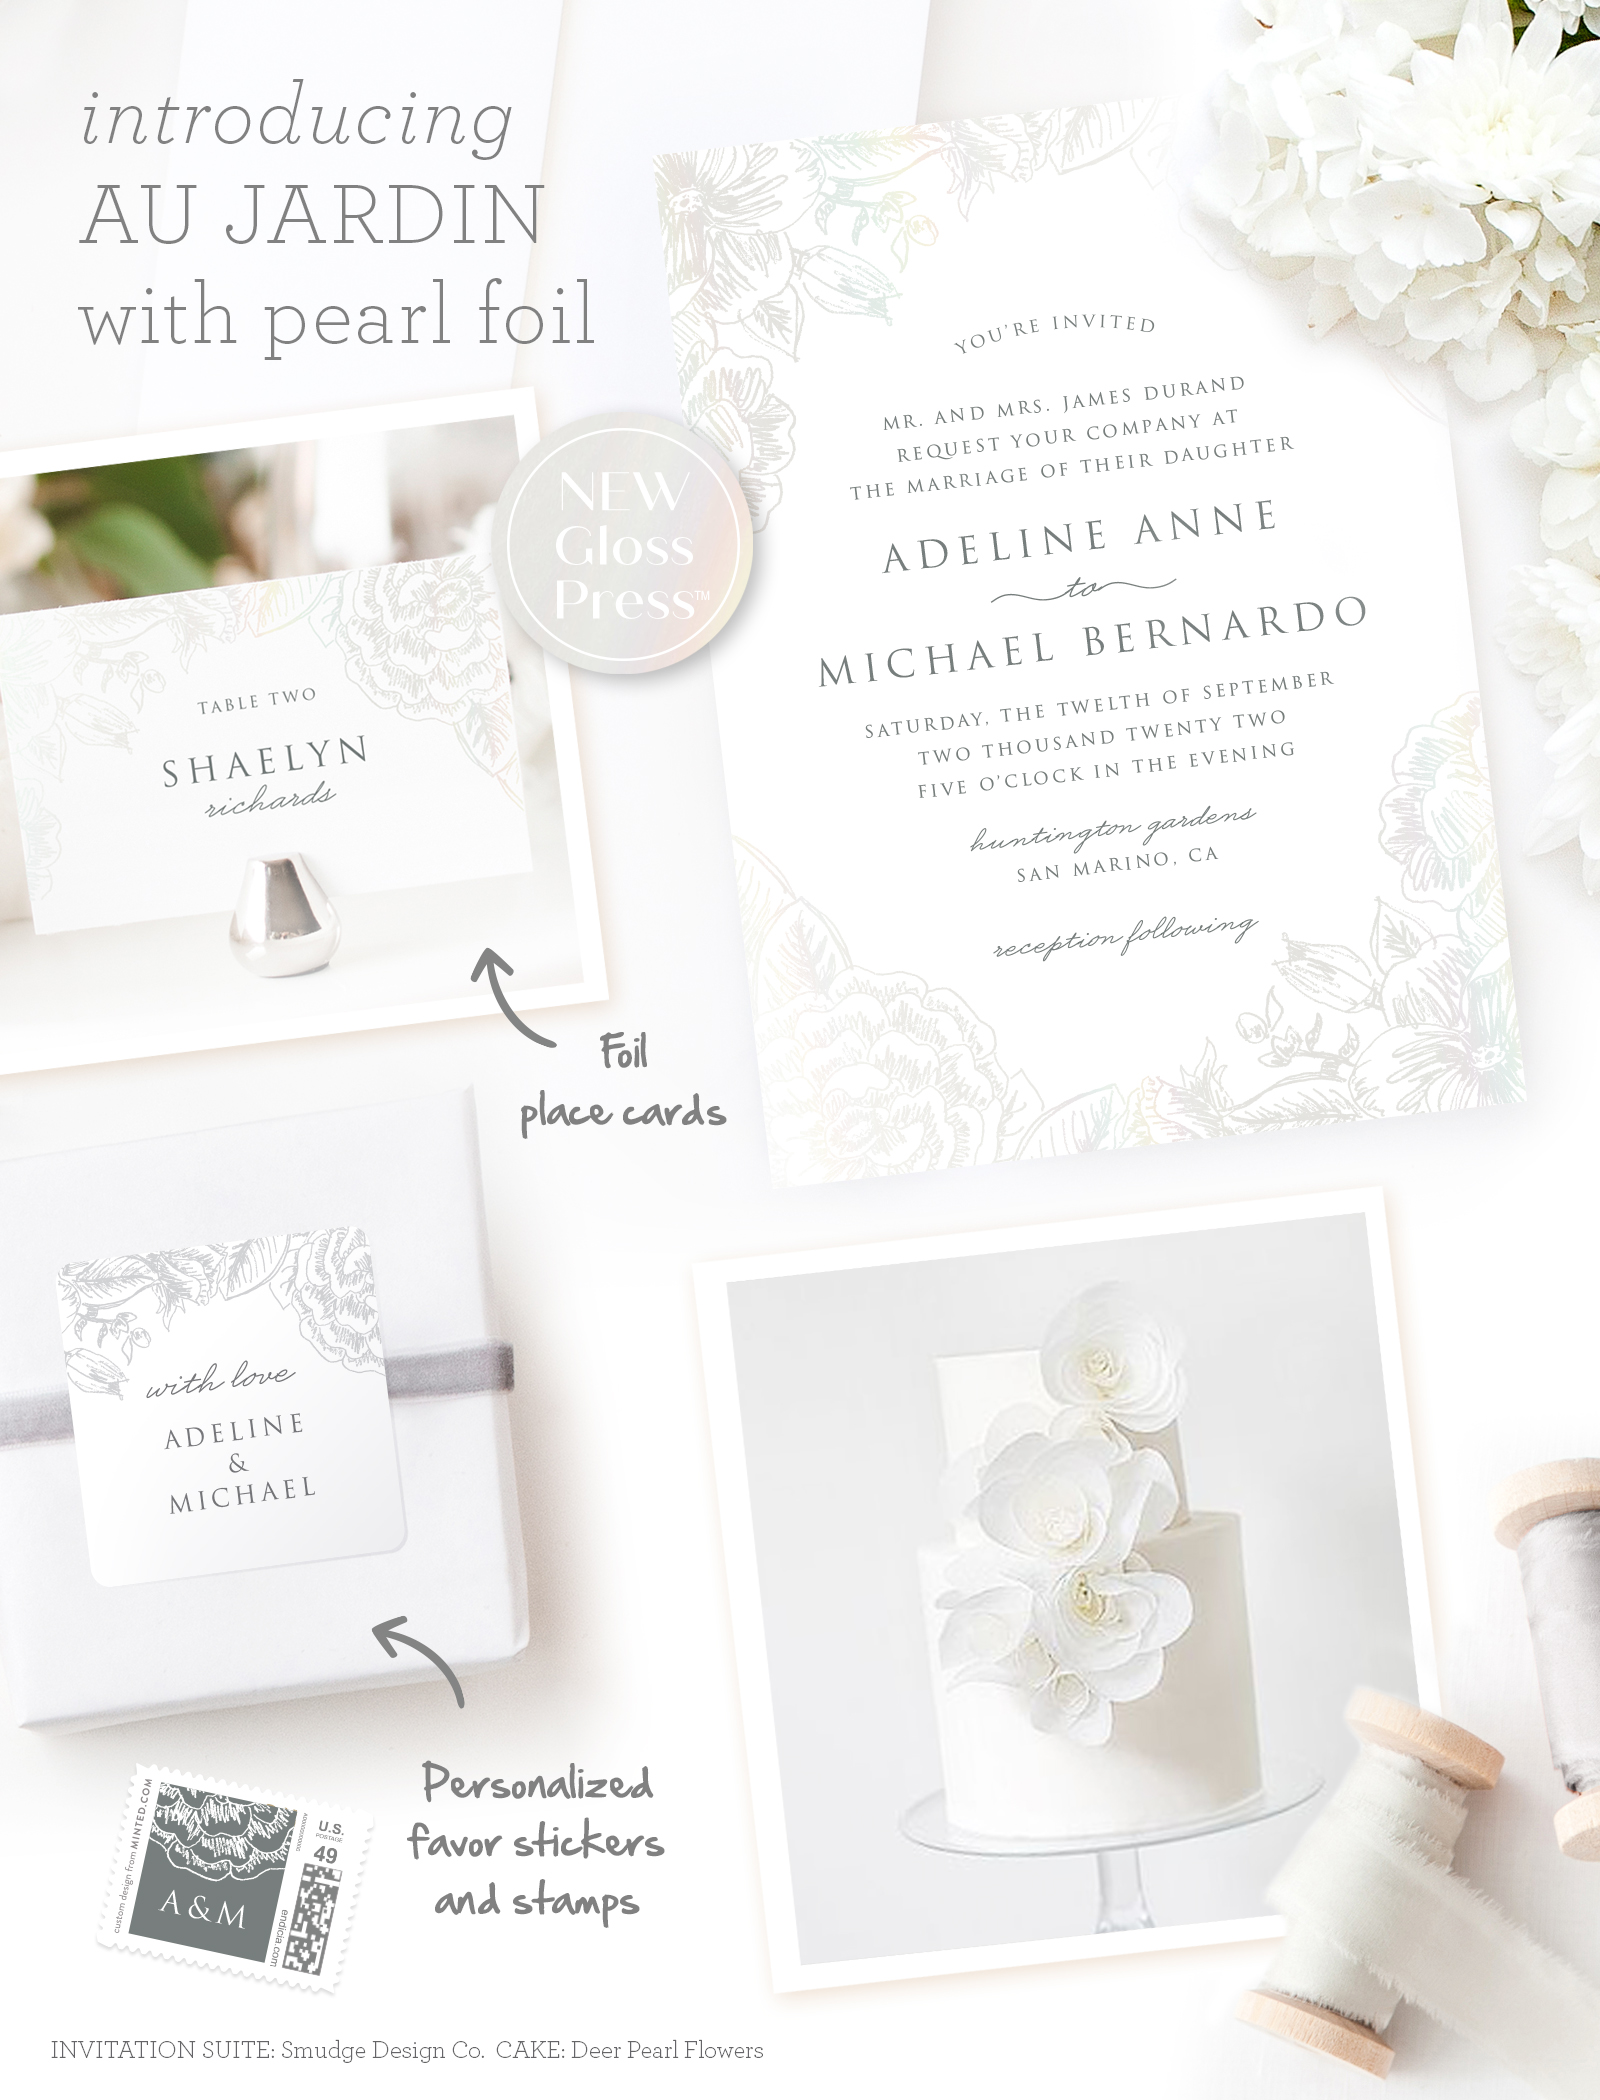 au-jardin-wedding-pinterest.jpg